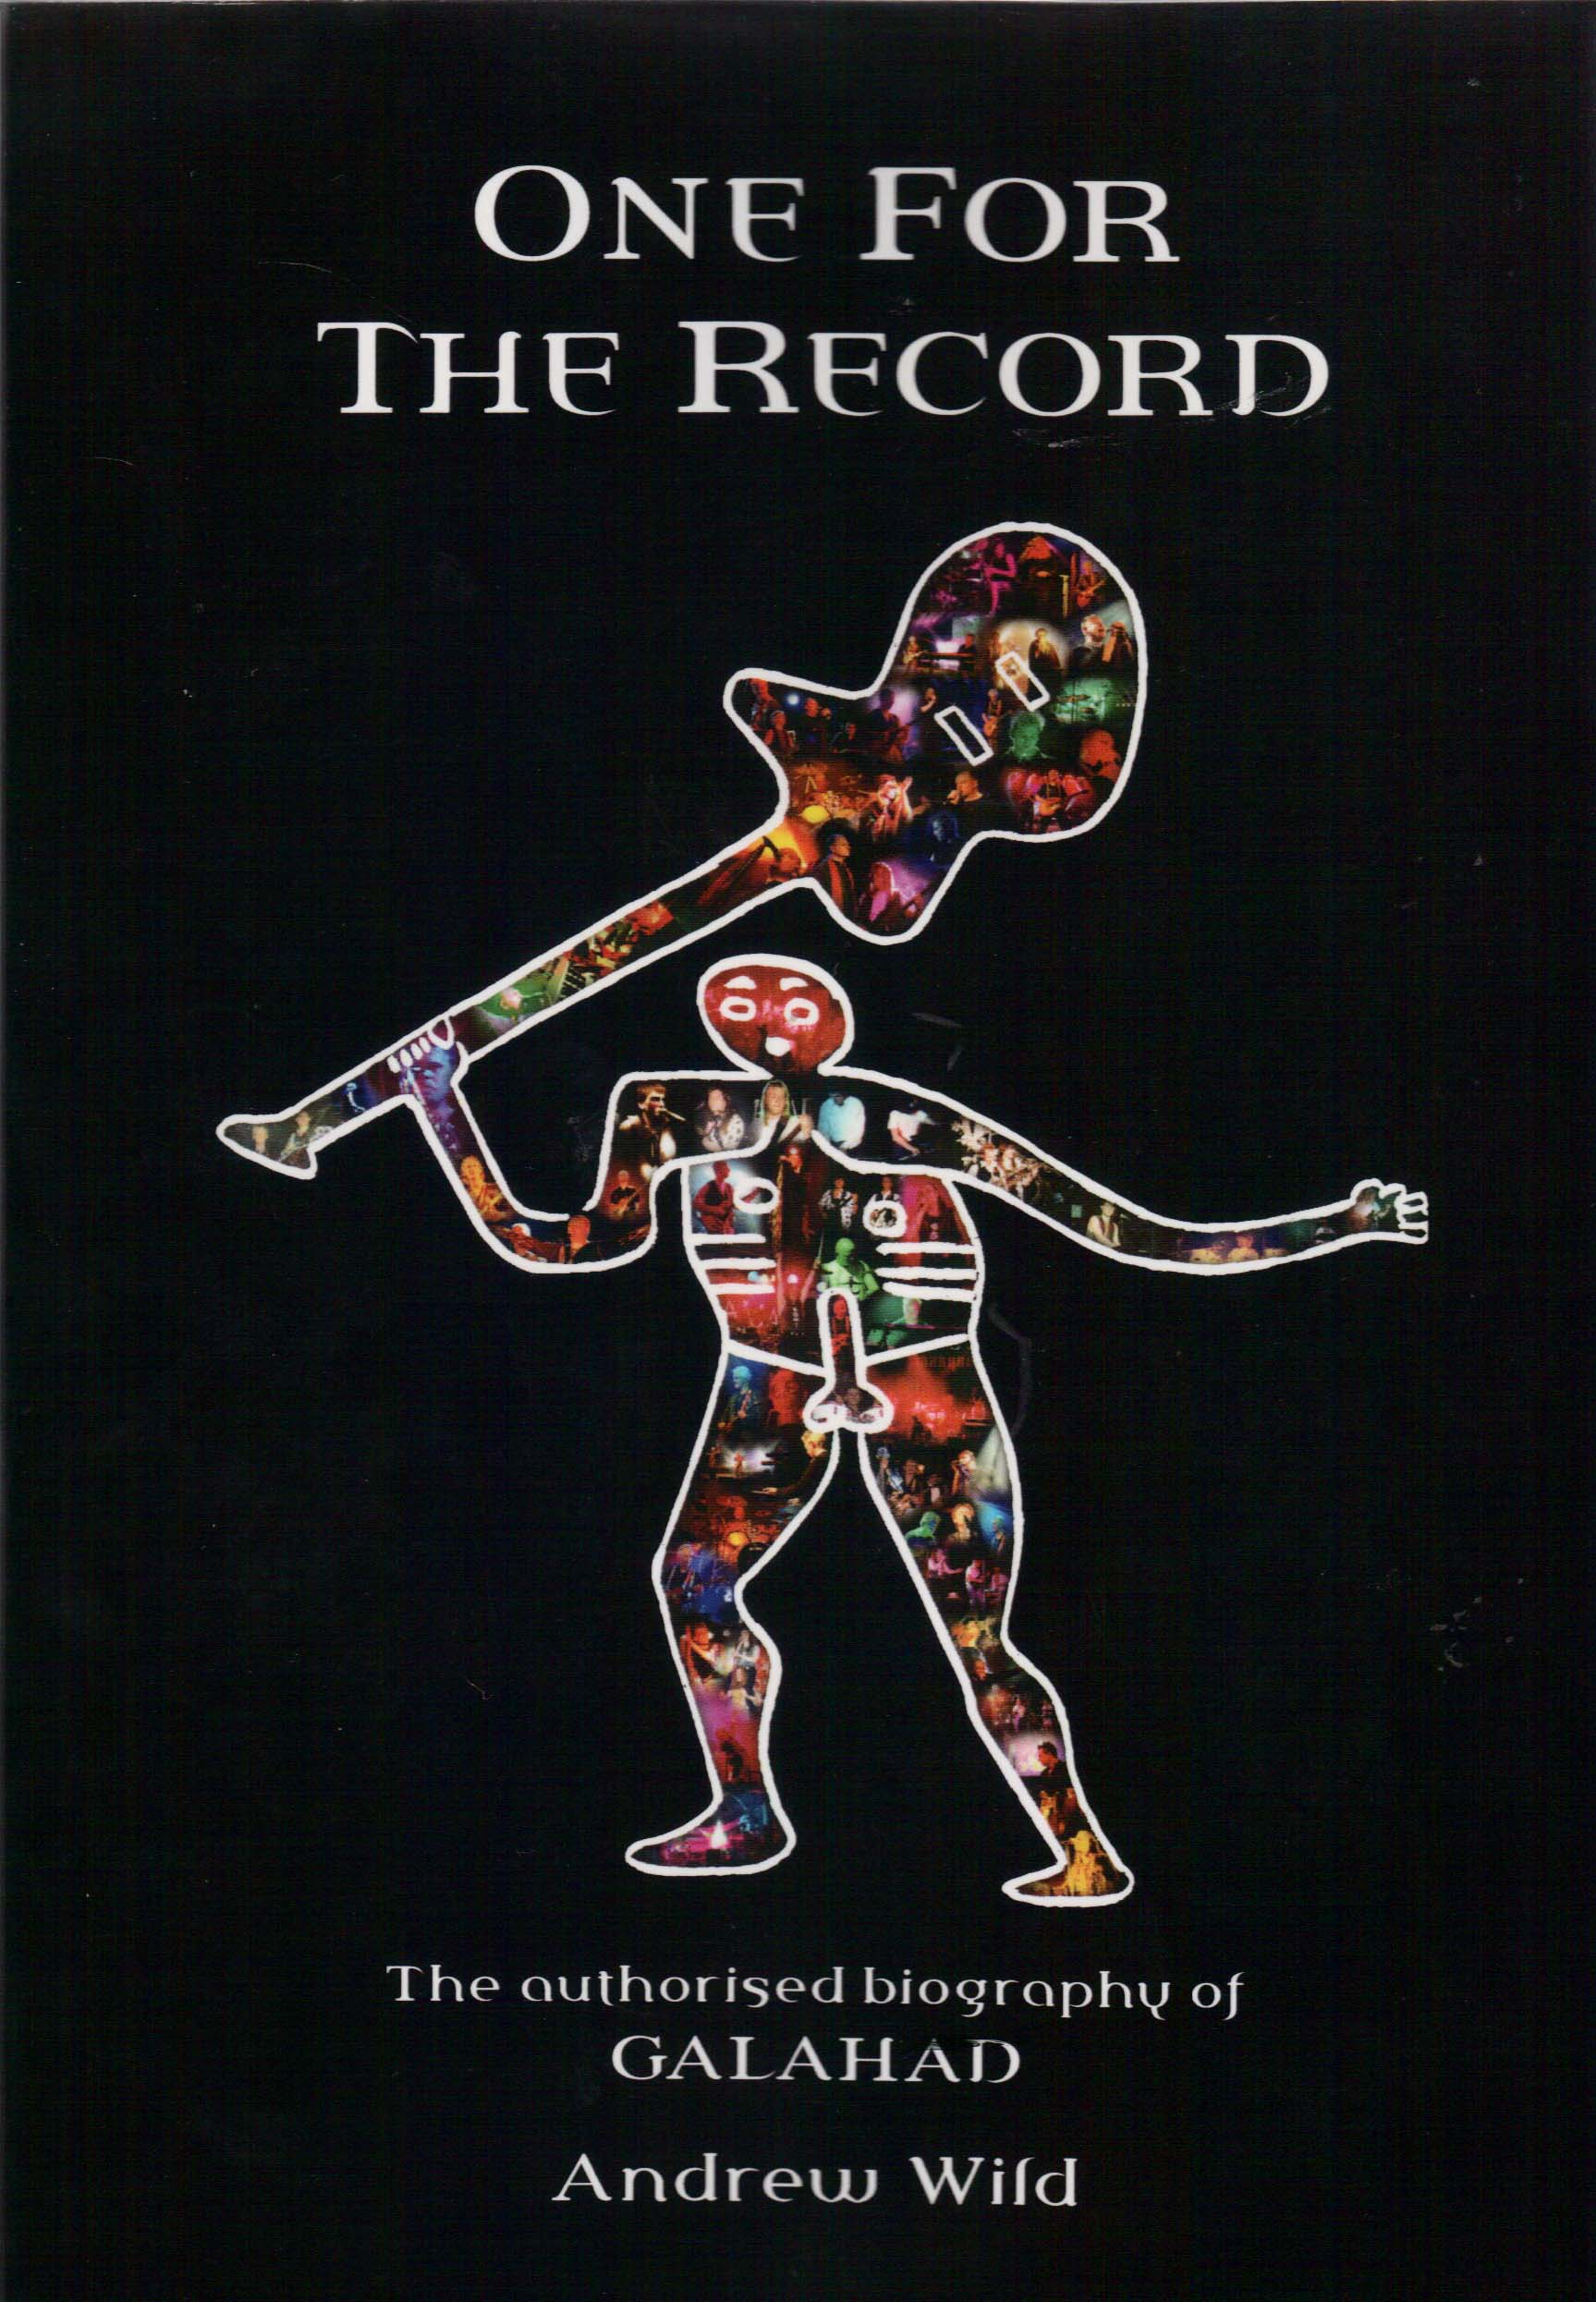 ANDREW WILD - One For The Record - The Authorised Biography Of Galahad - Livre